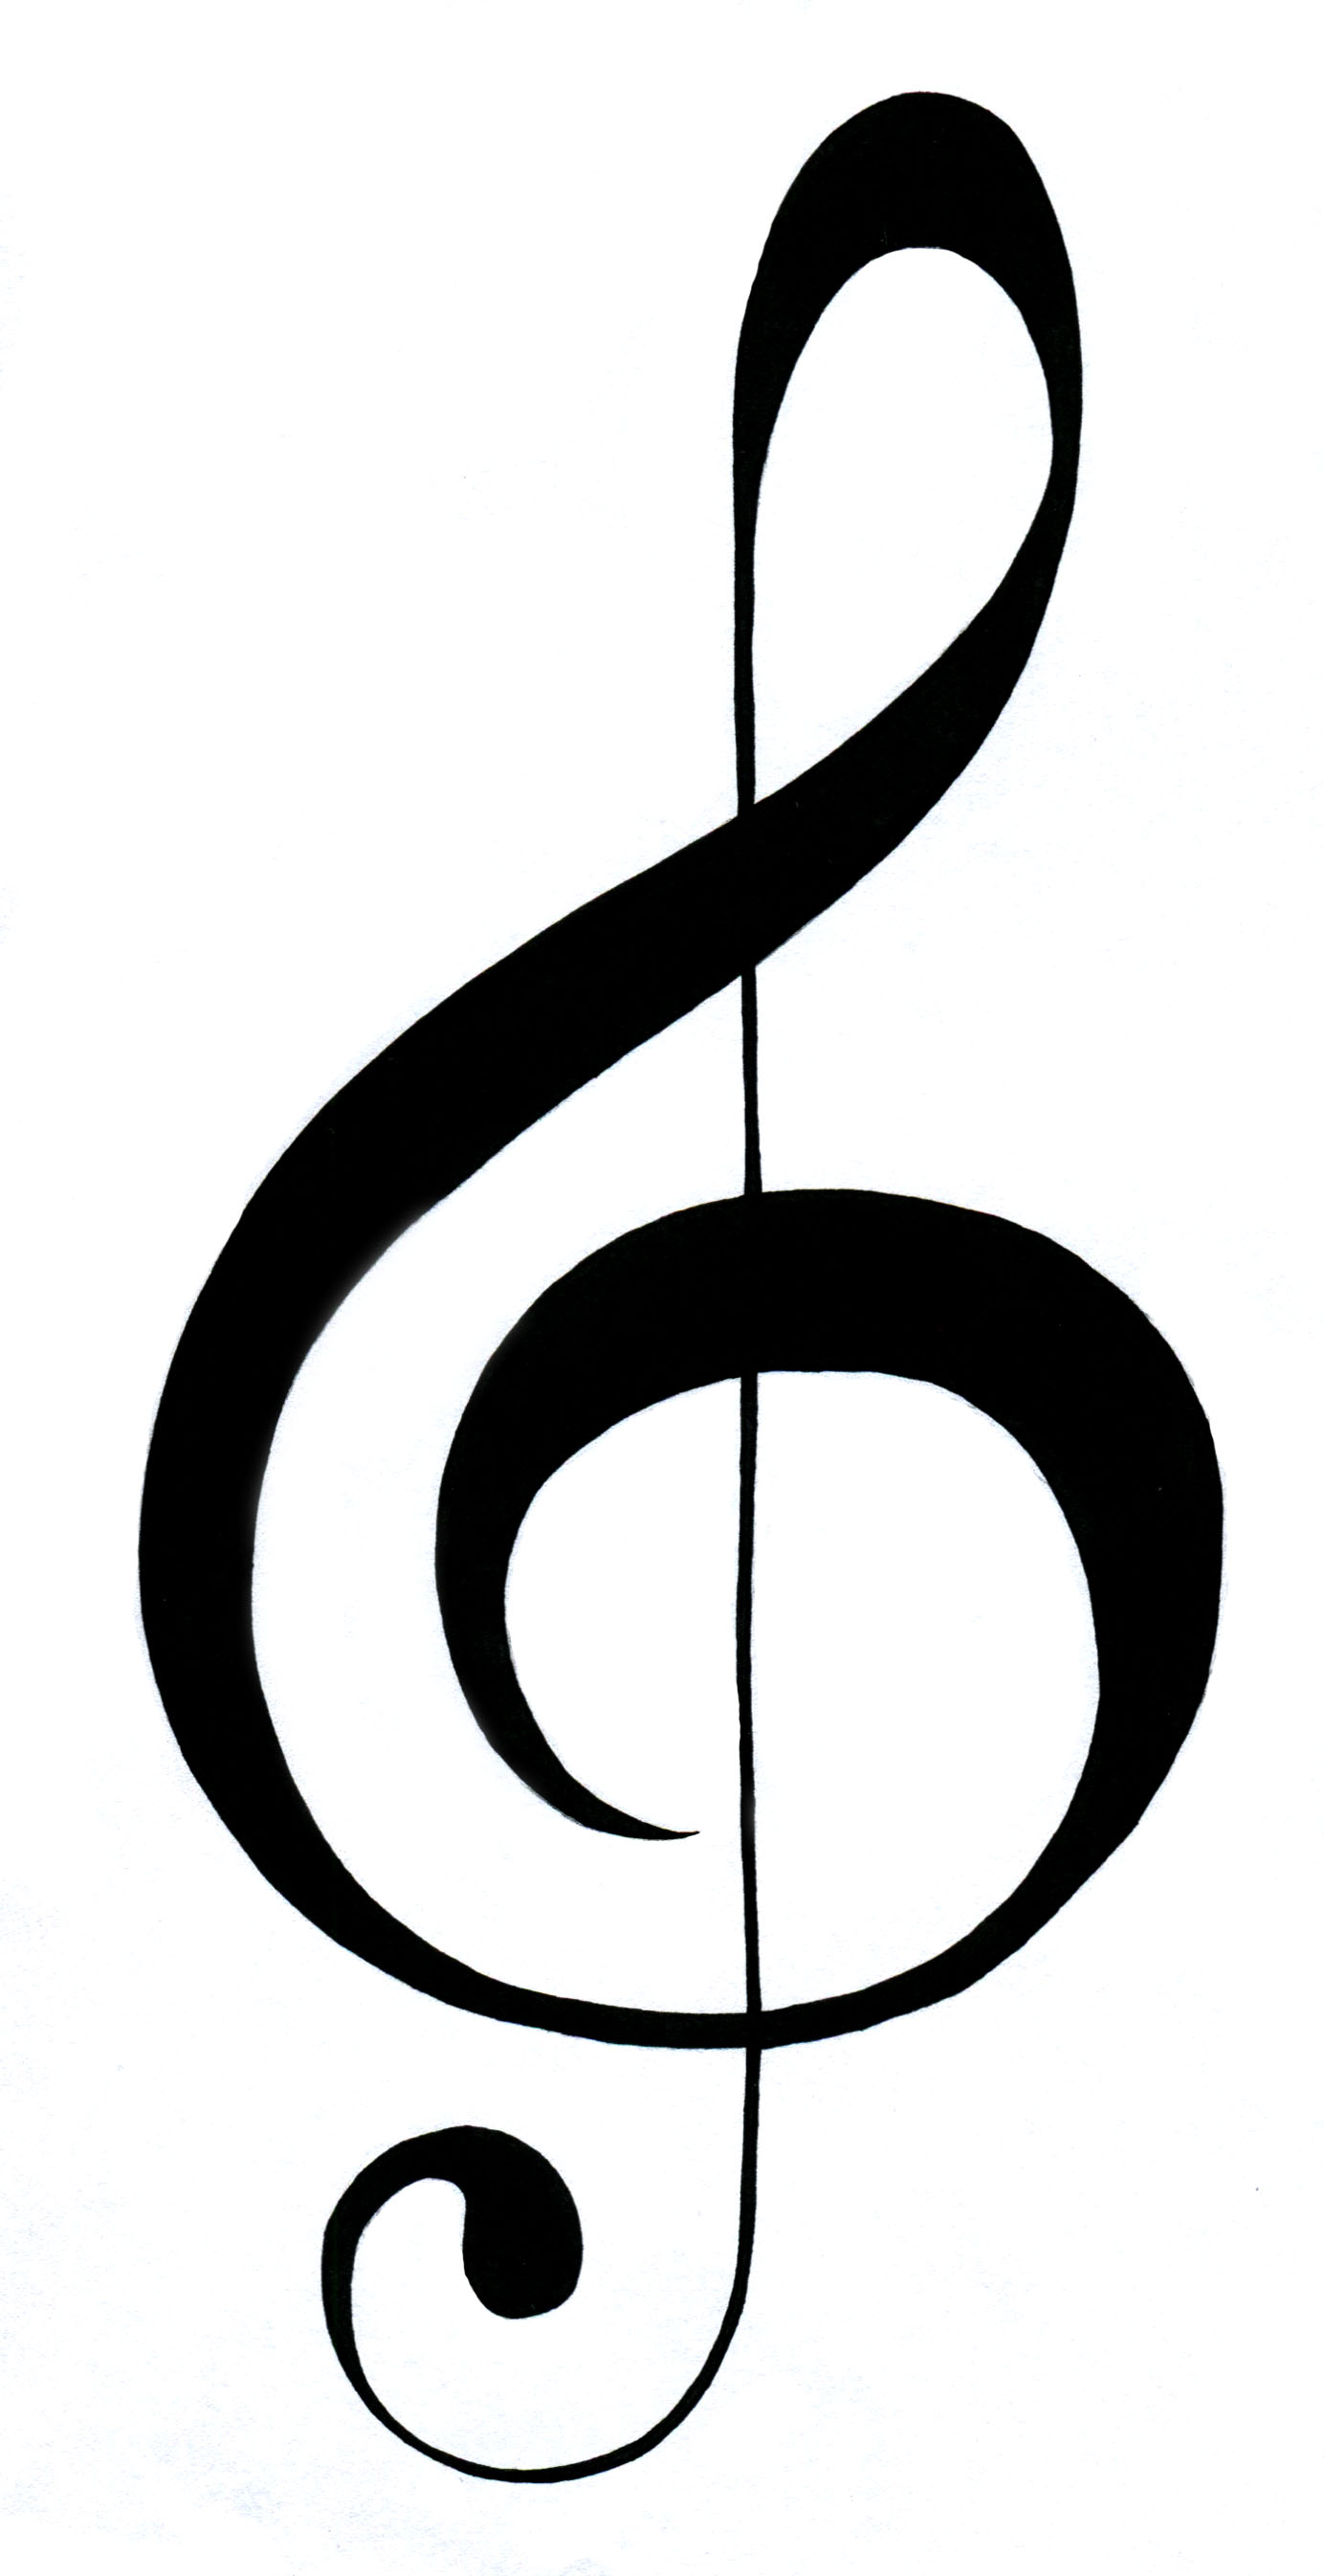 Clef clipart.